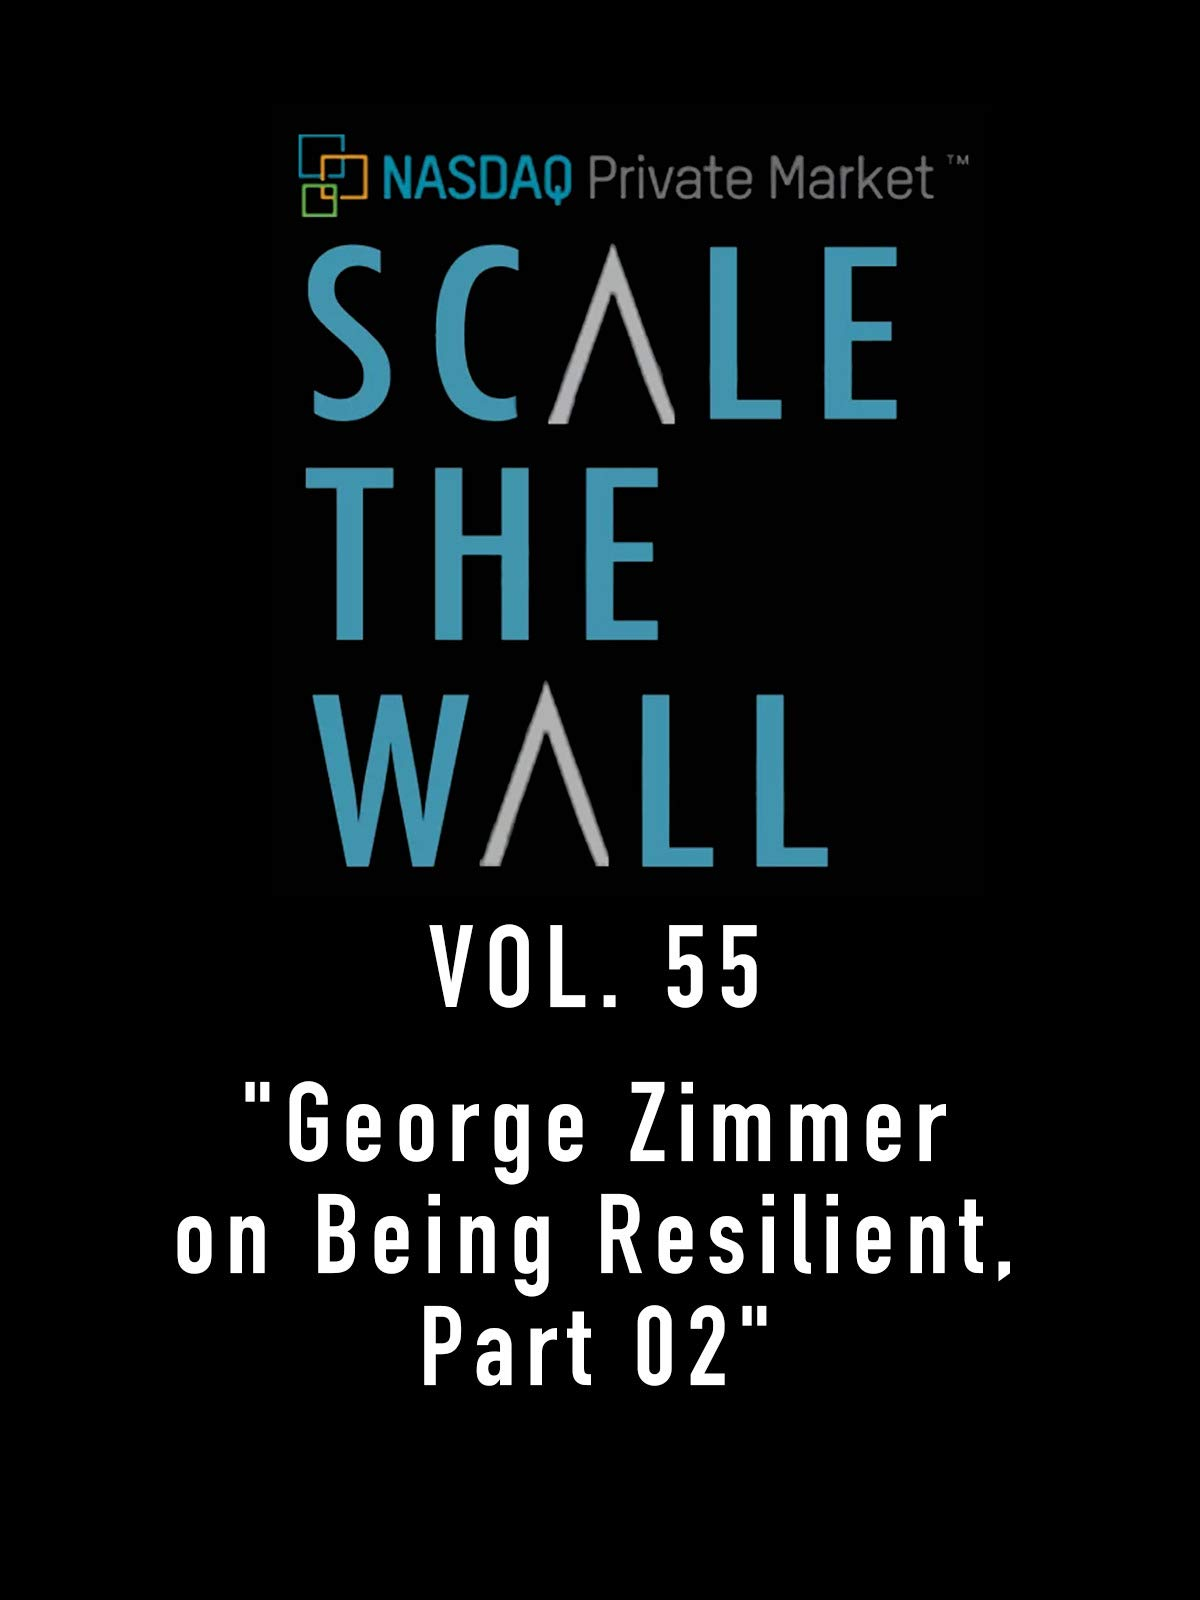 Scale The Wall Vol. 55